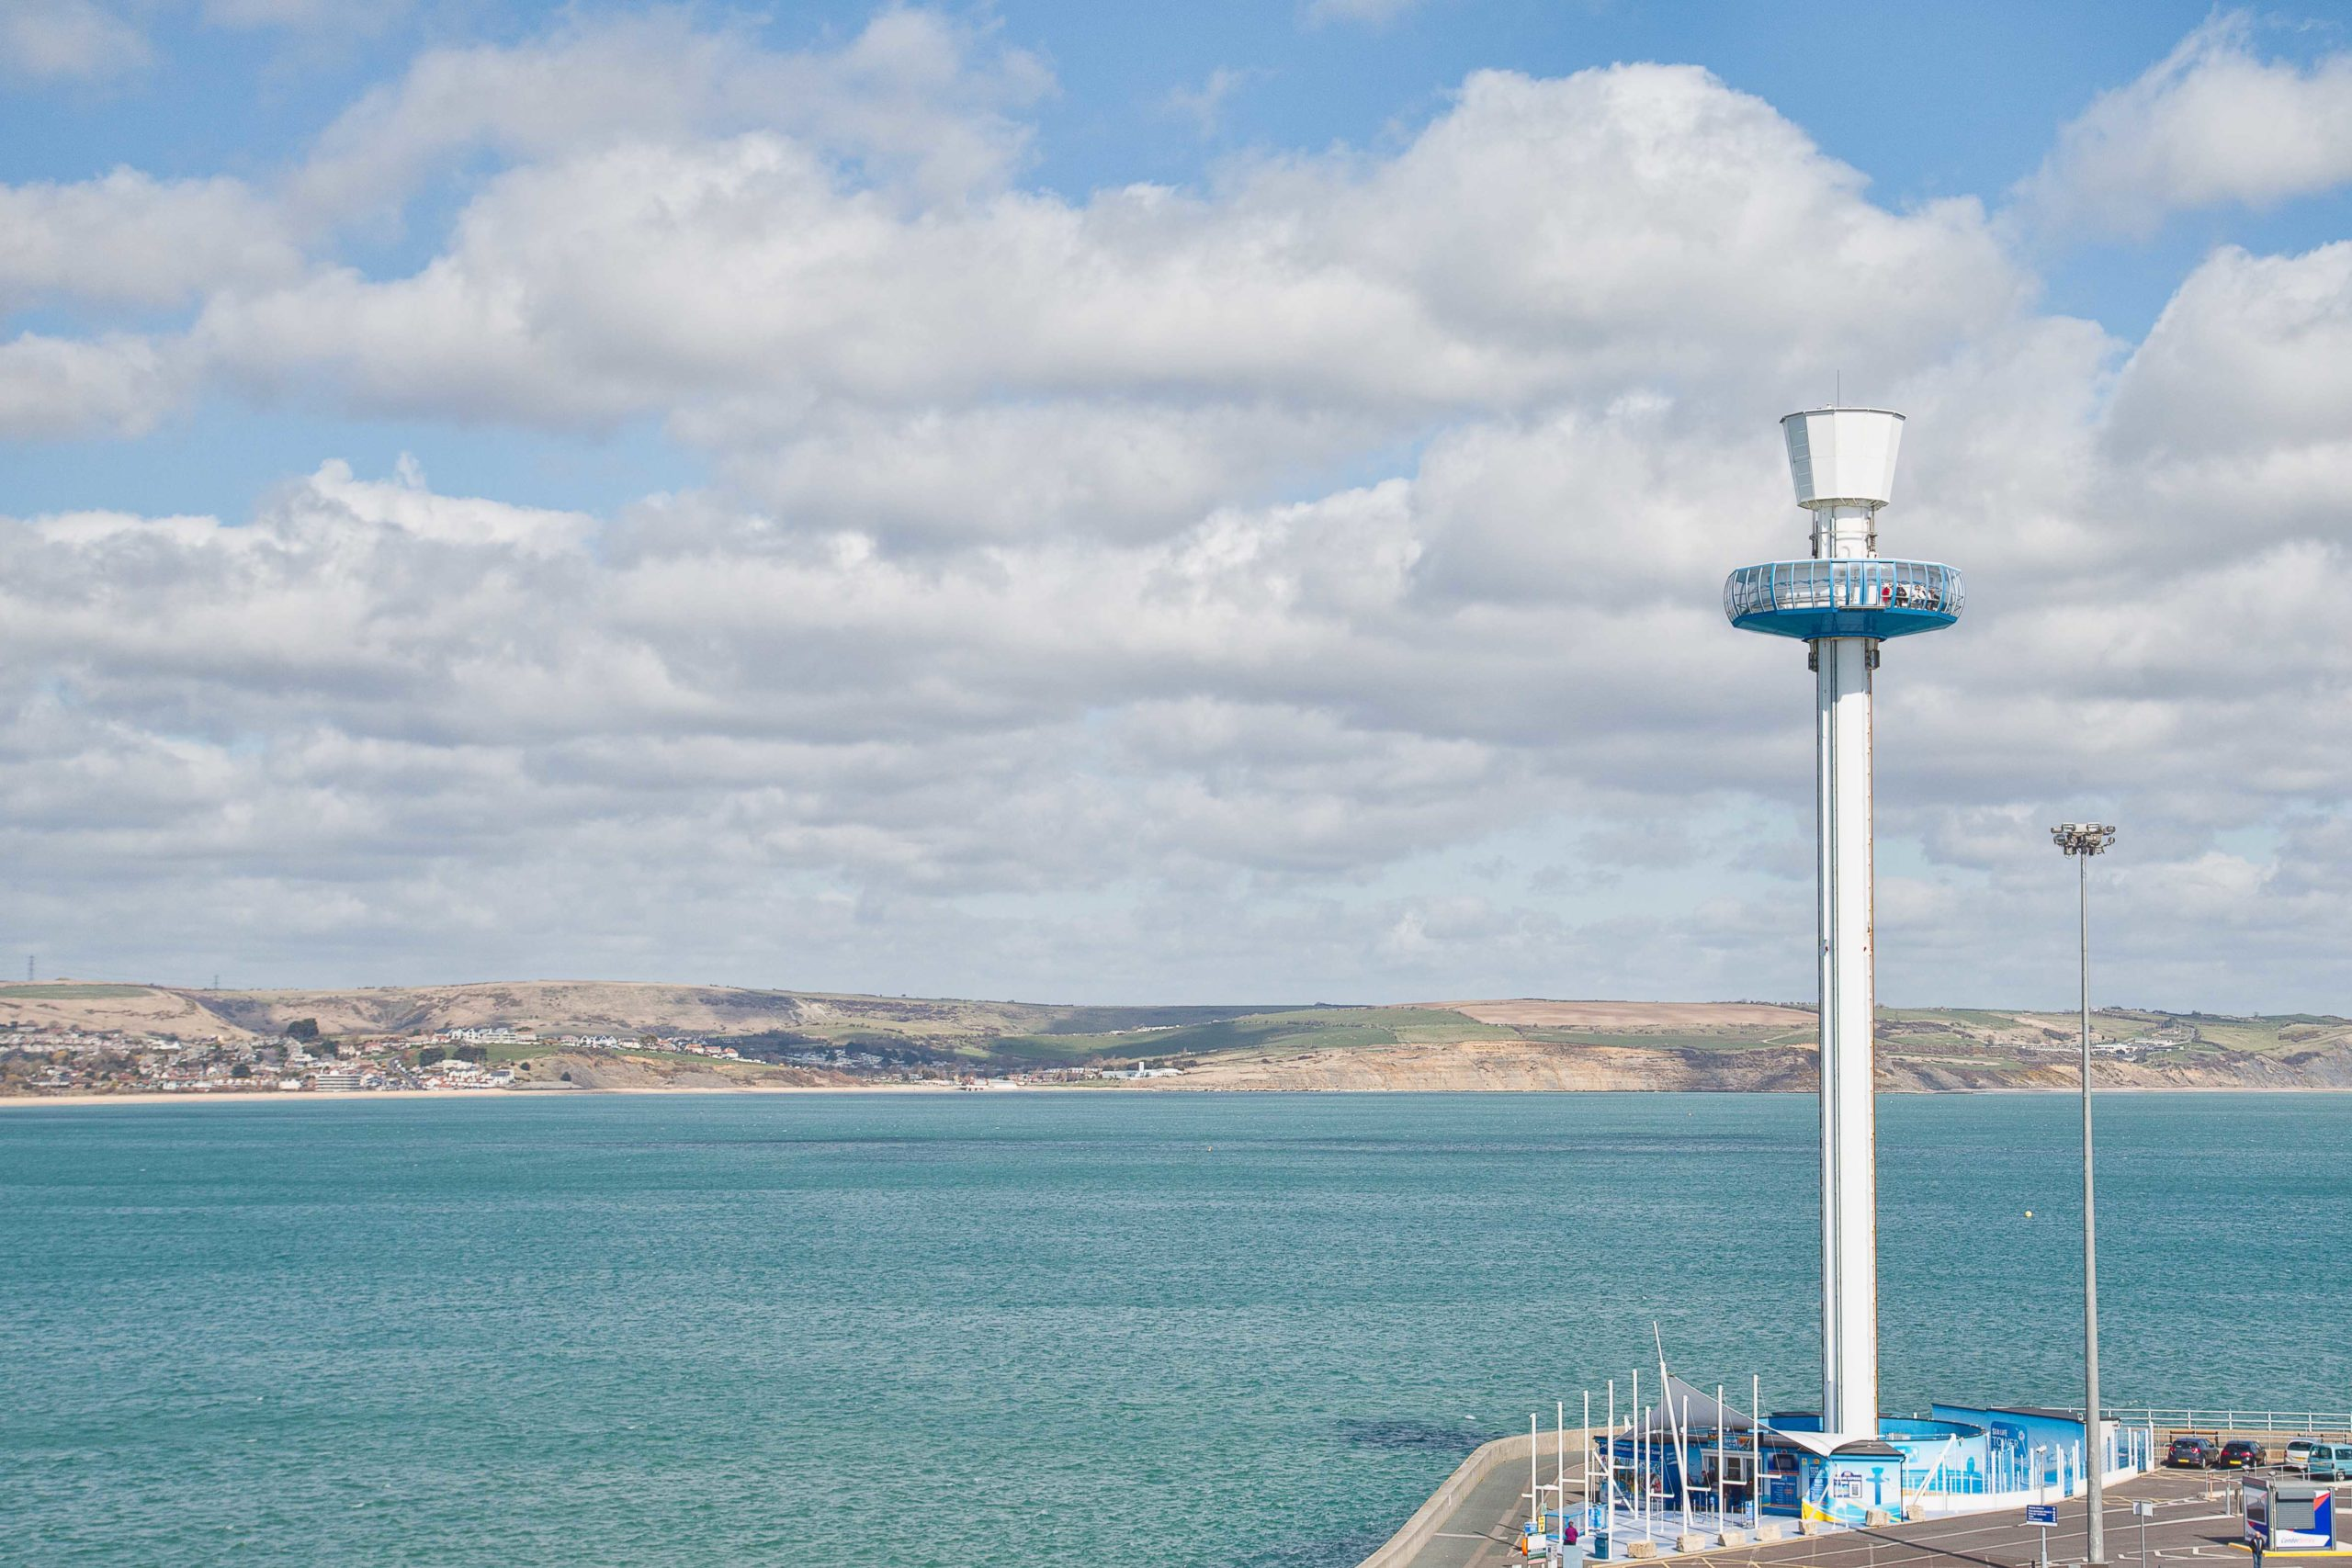 The Jurassic Skyline tower is the tallest structure on the Jurassic Coast